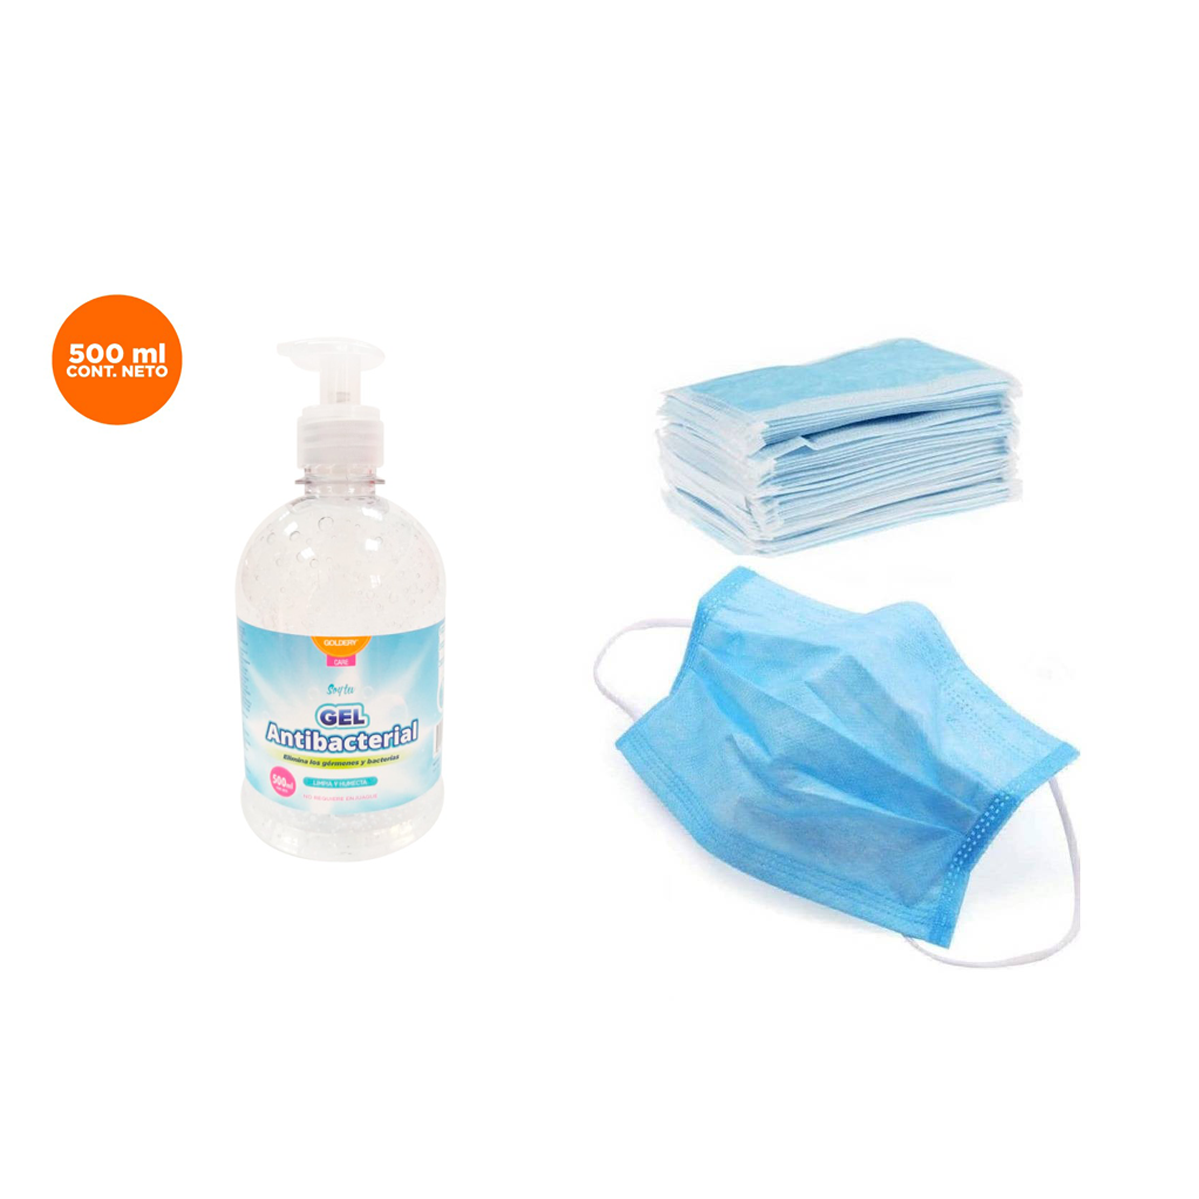 COMBO: Gel Antibacterial 70% Alcohol 500 ml + Pack de mascarilla triple capa x 50 Unidades